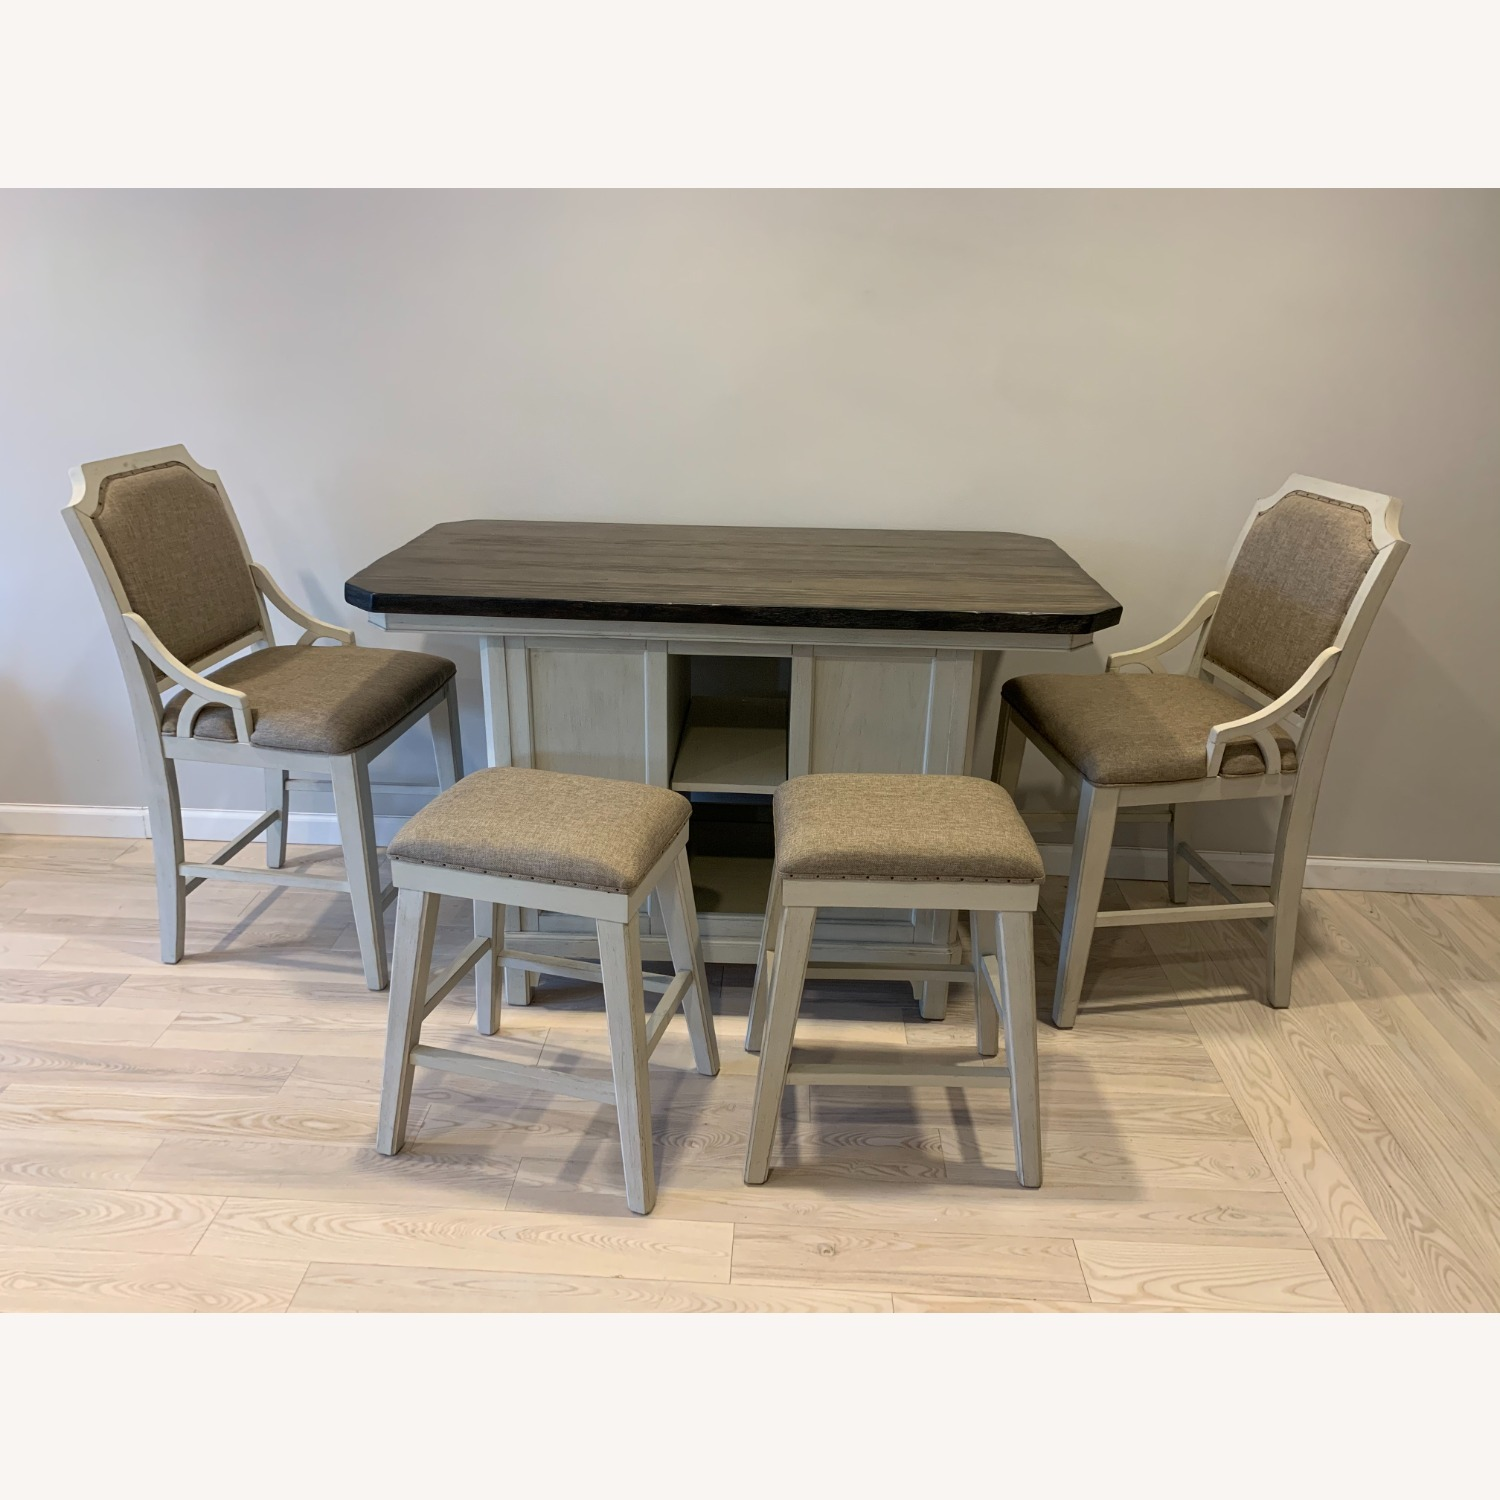 Peter Andrews Kitchen Island Table - image-4